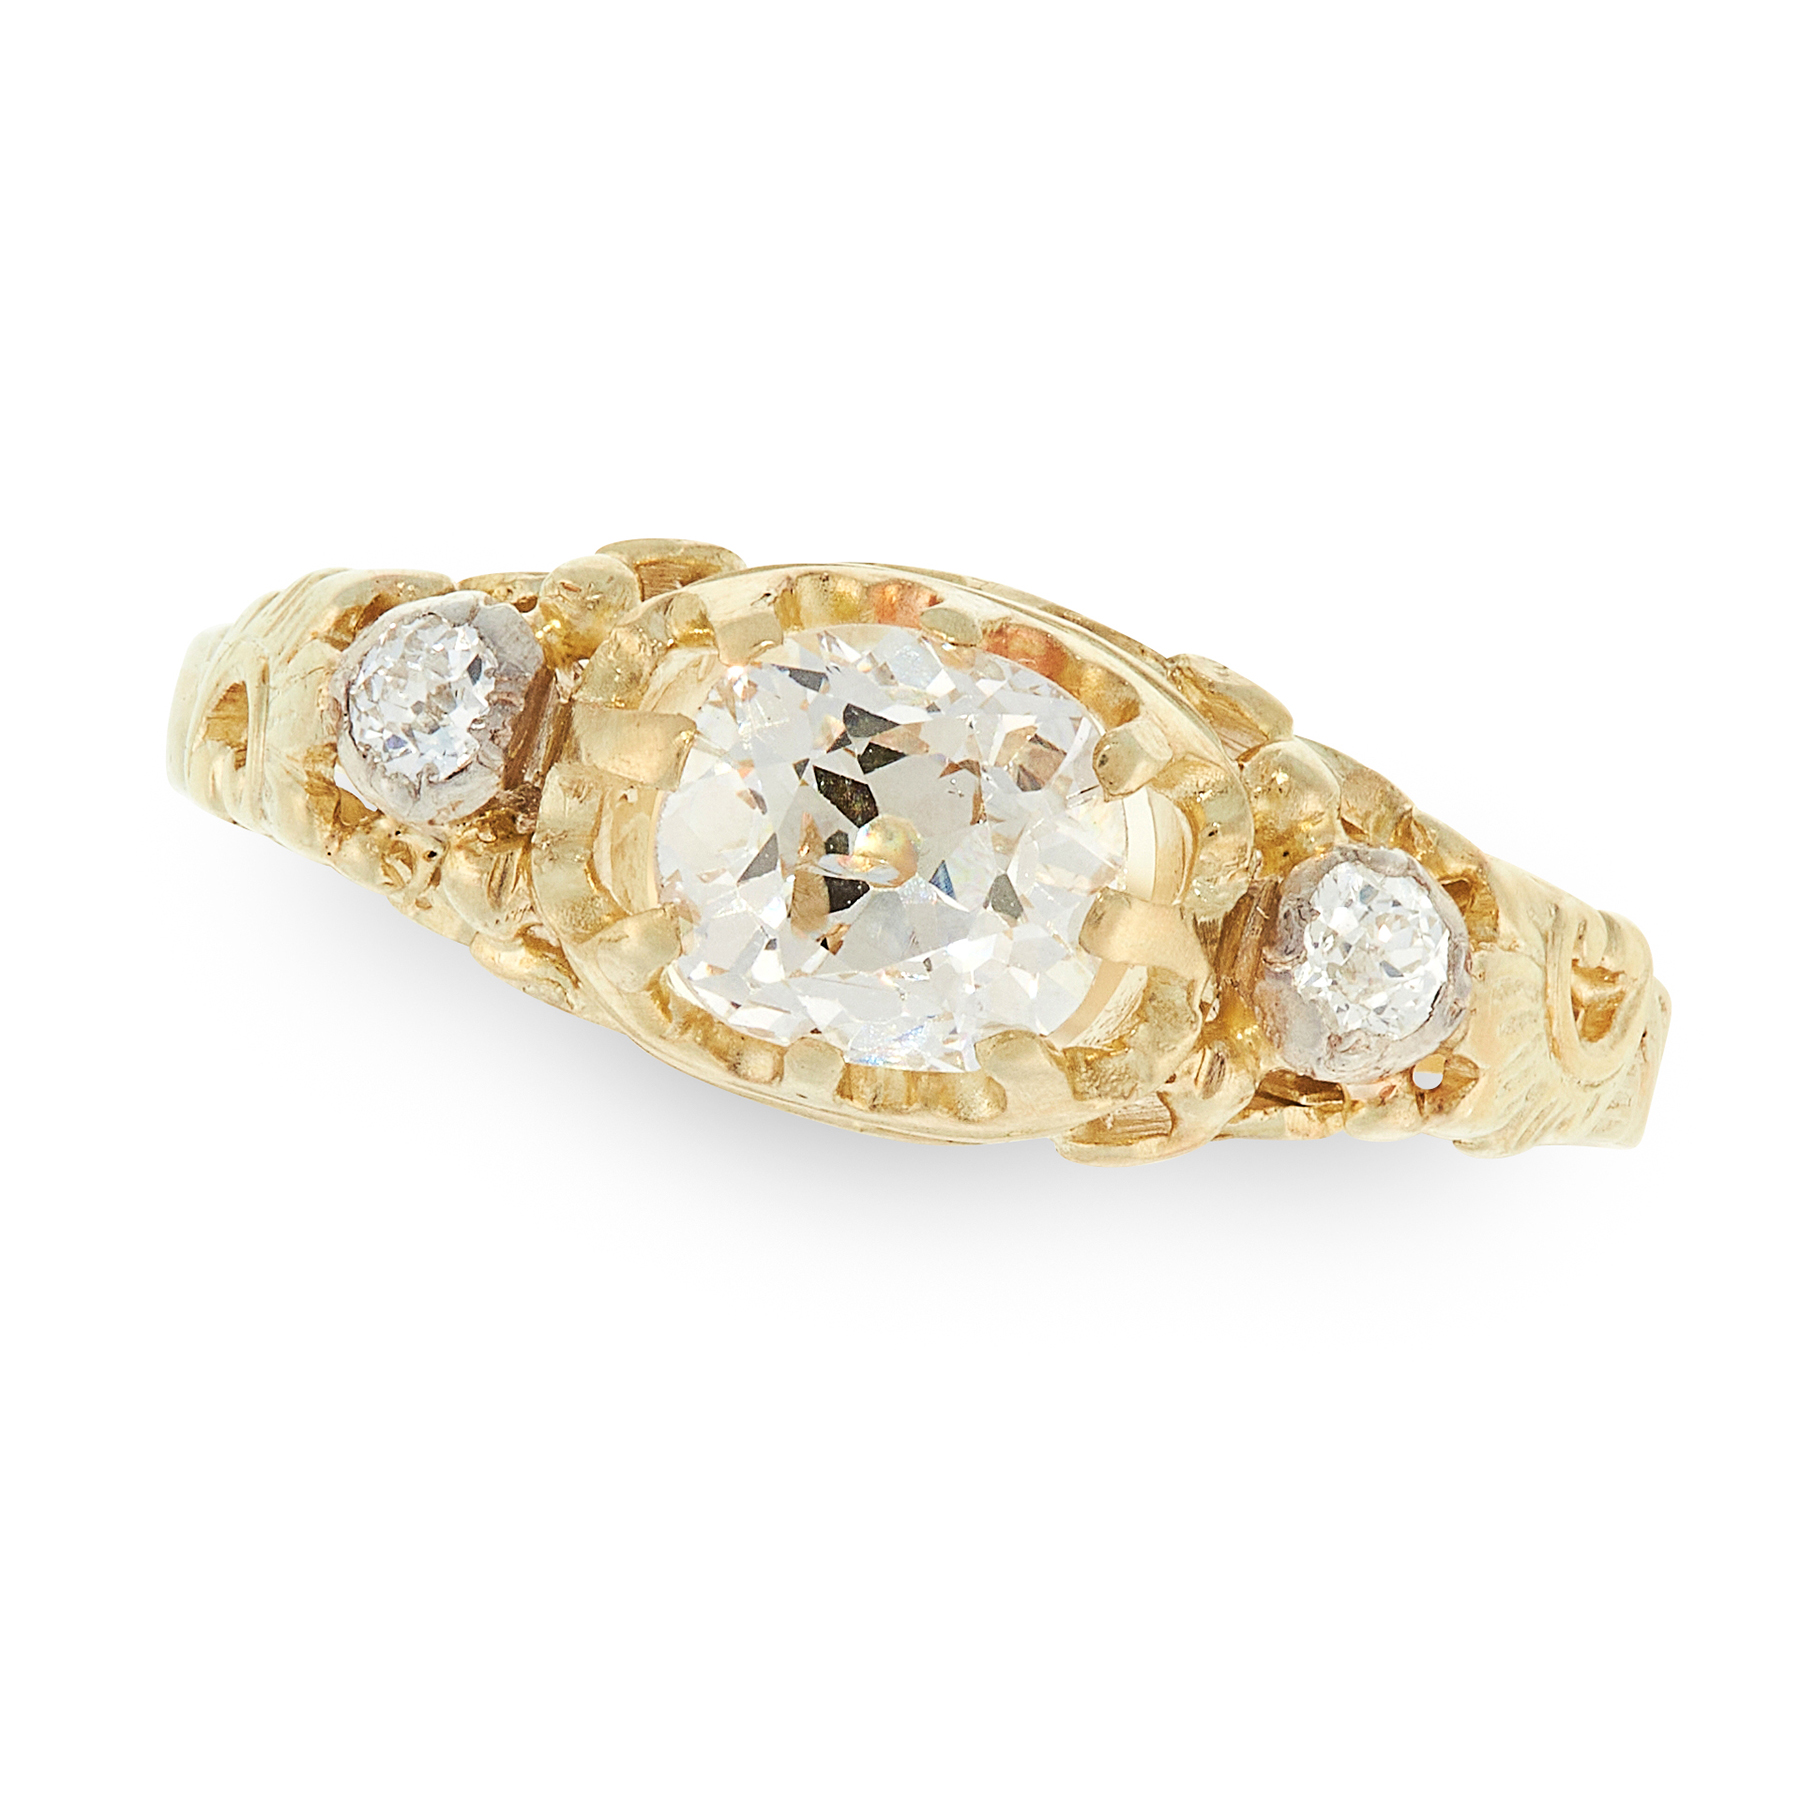 AN ANTIQUE DIAMOND DRESS RING, 19TH CENTURY in high carat yellow gold, set with three old cut